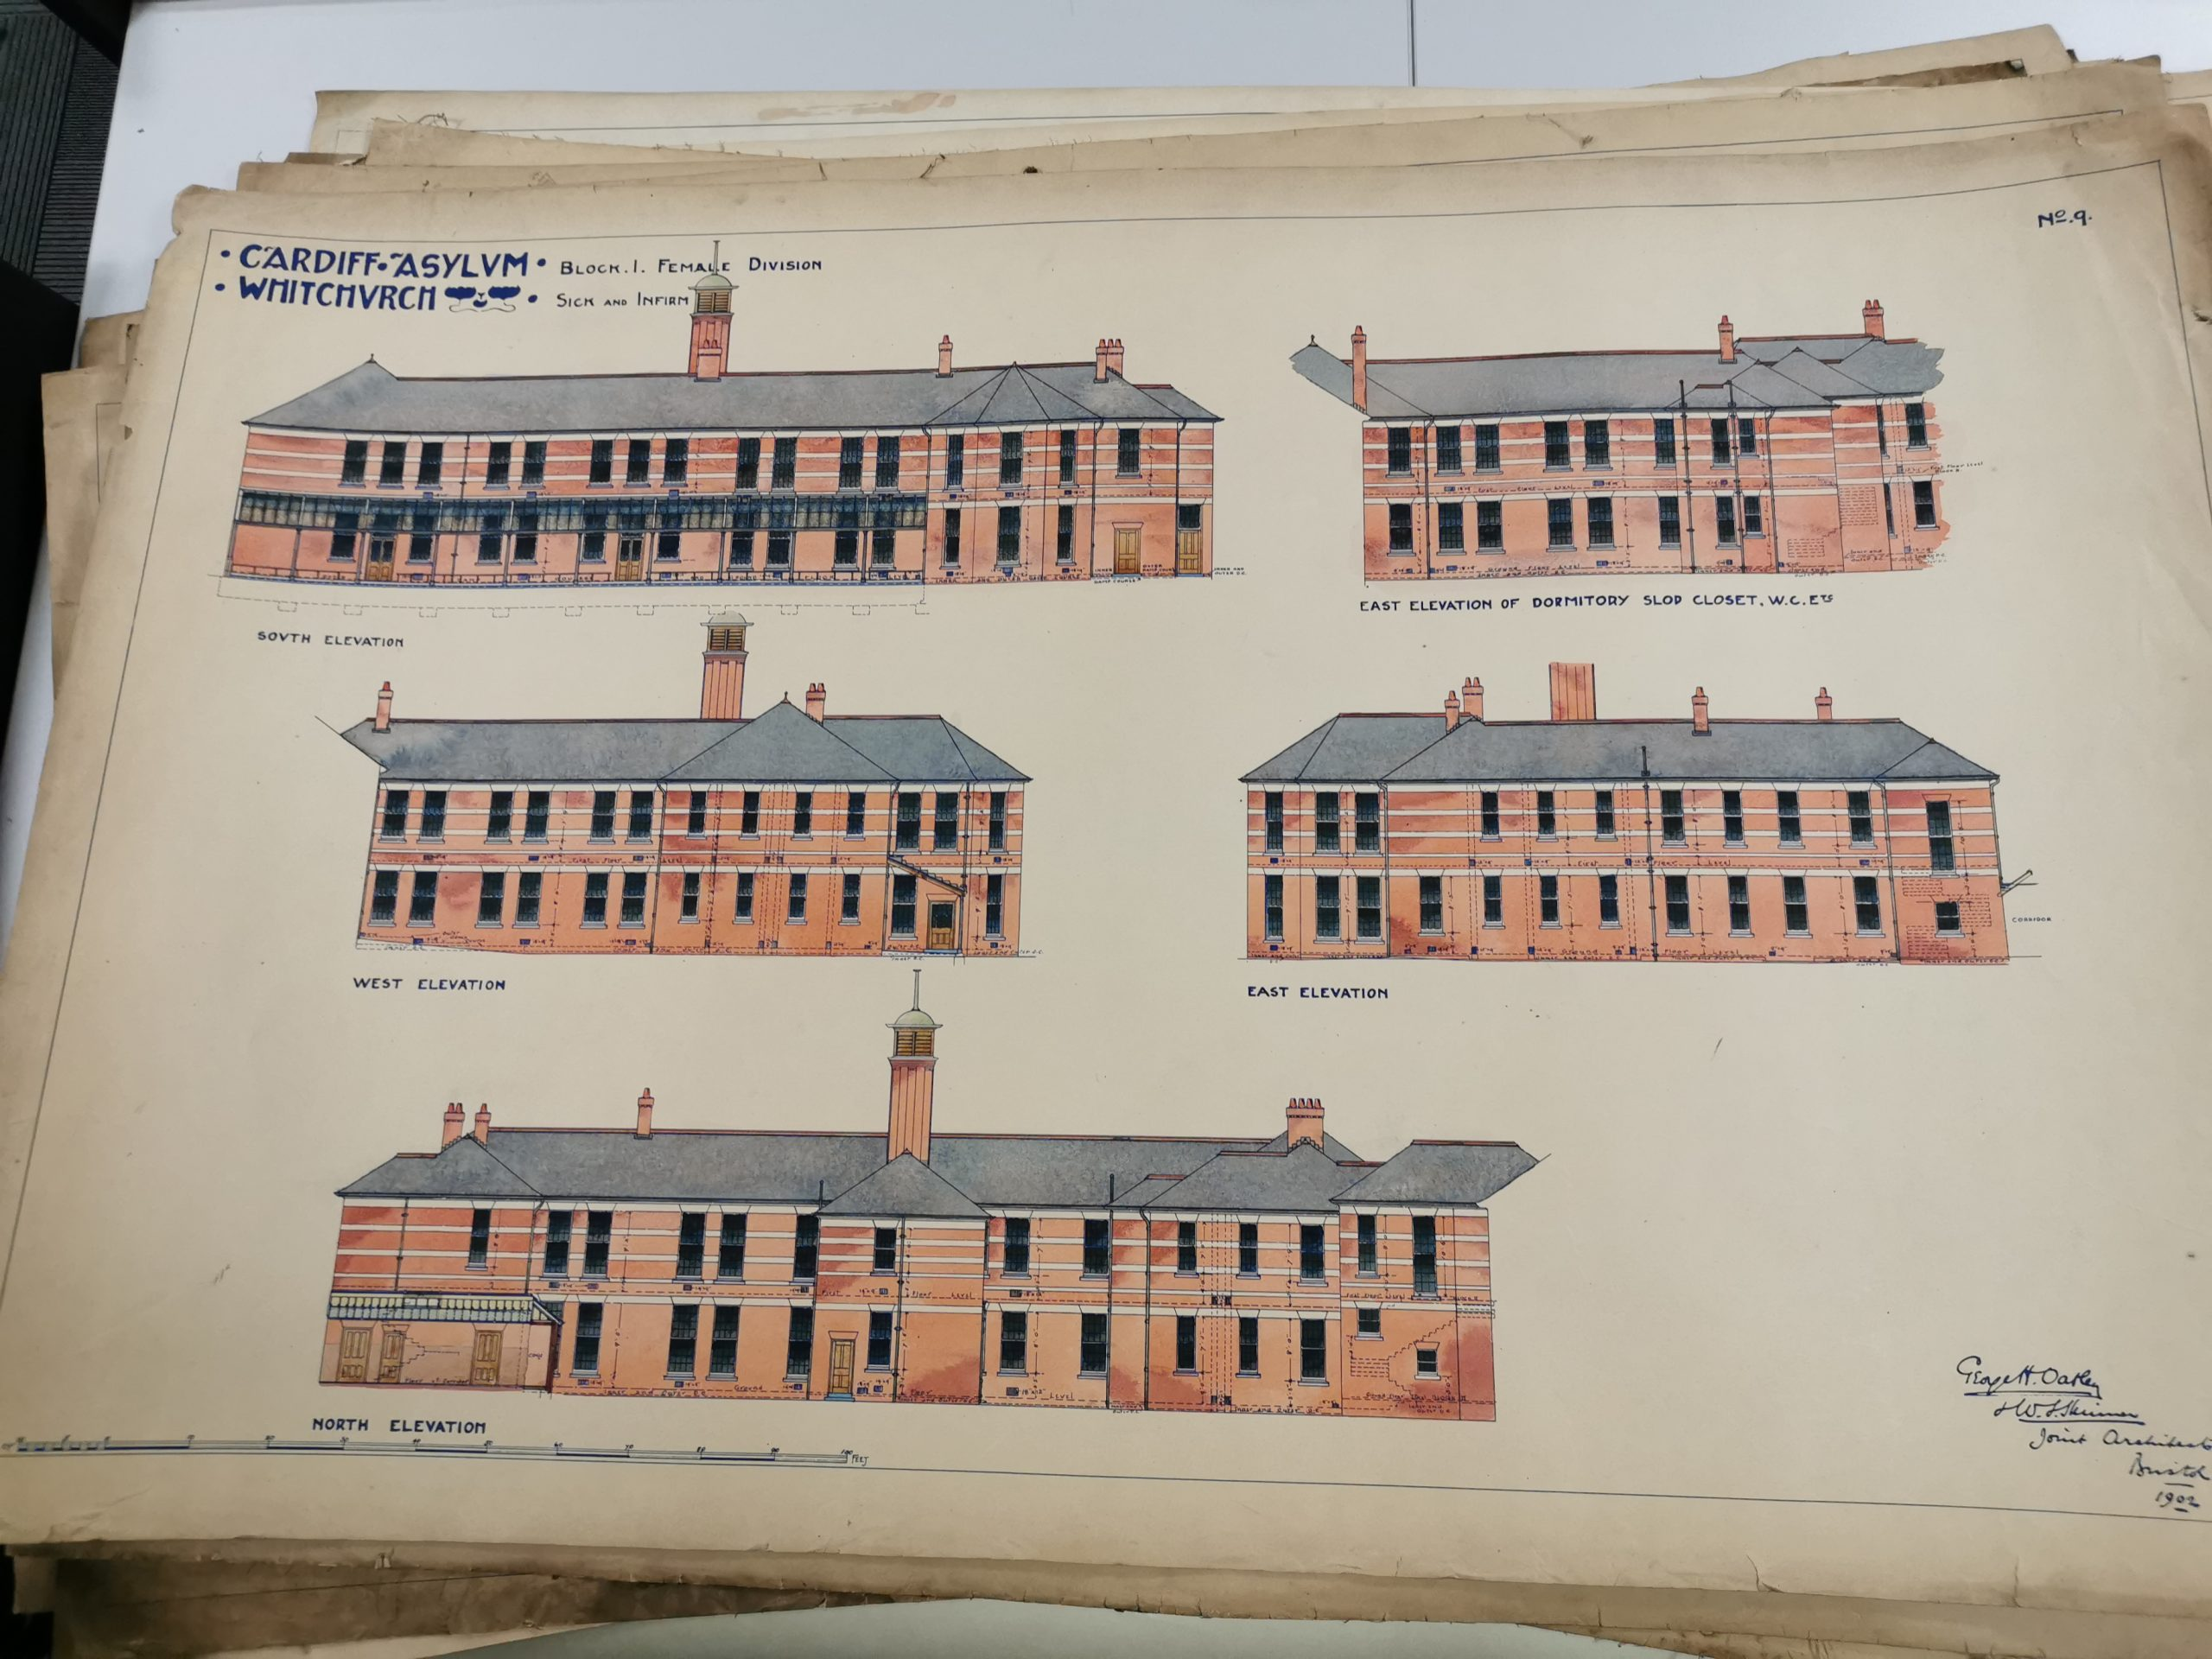 Original elevations of Whitchurch Hospital